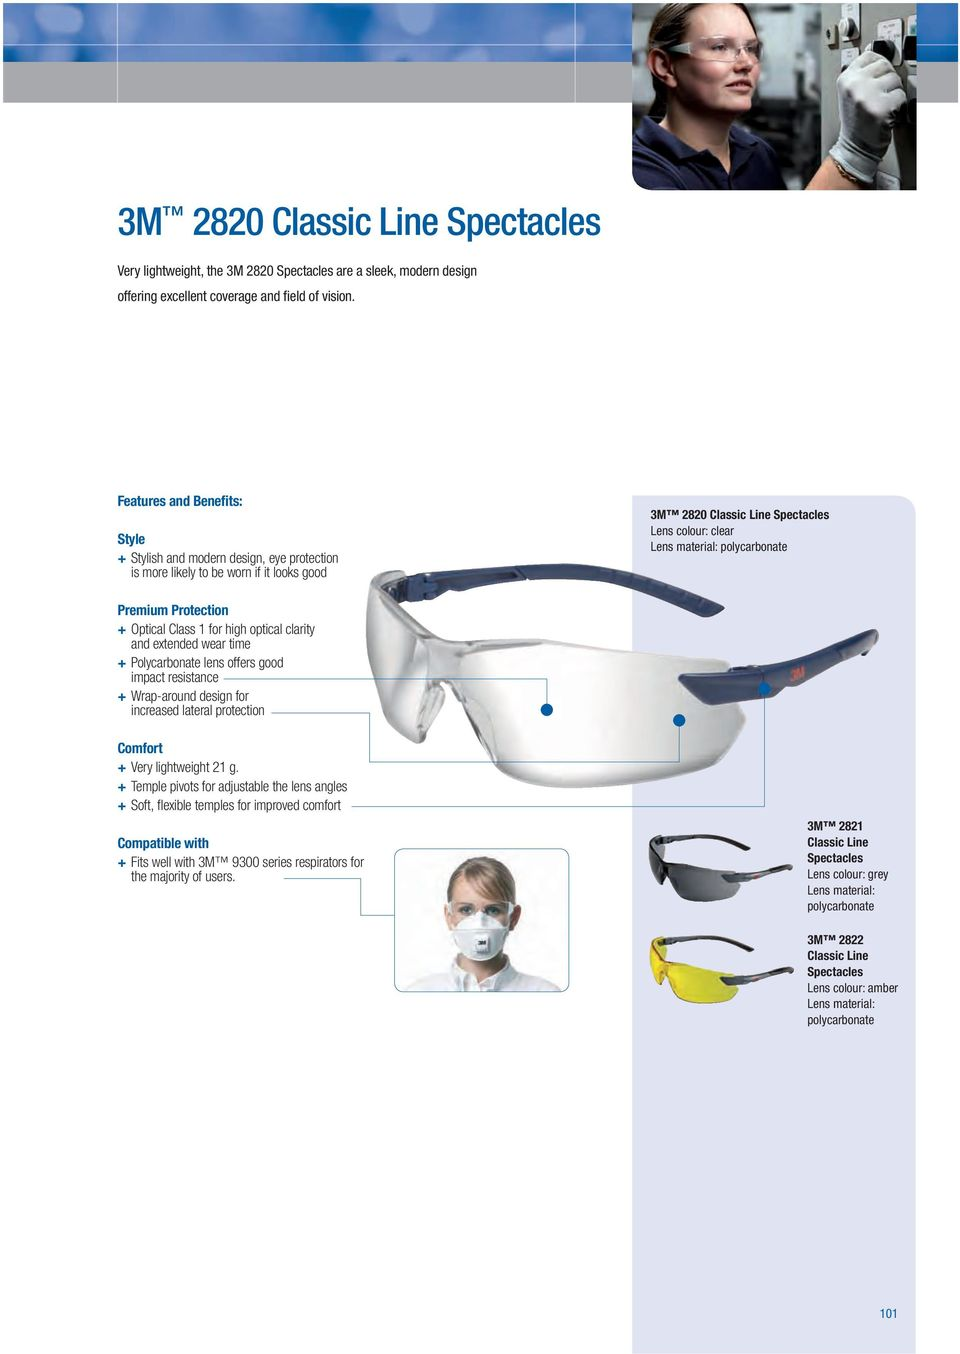 Polycarbonate lens offers good impact resistance + Wrap-around design for increased lateral protection + Very lightweight 21 g.